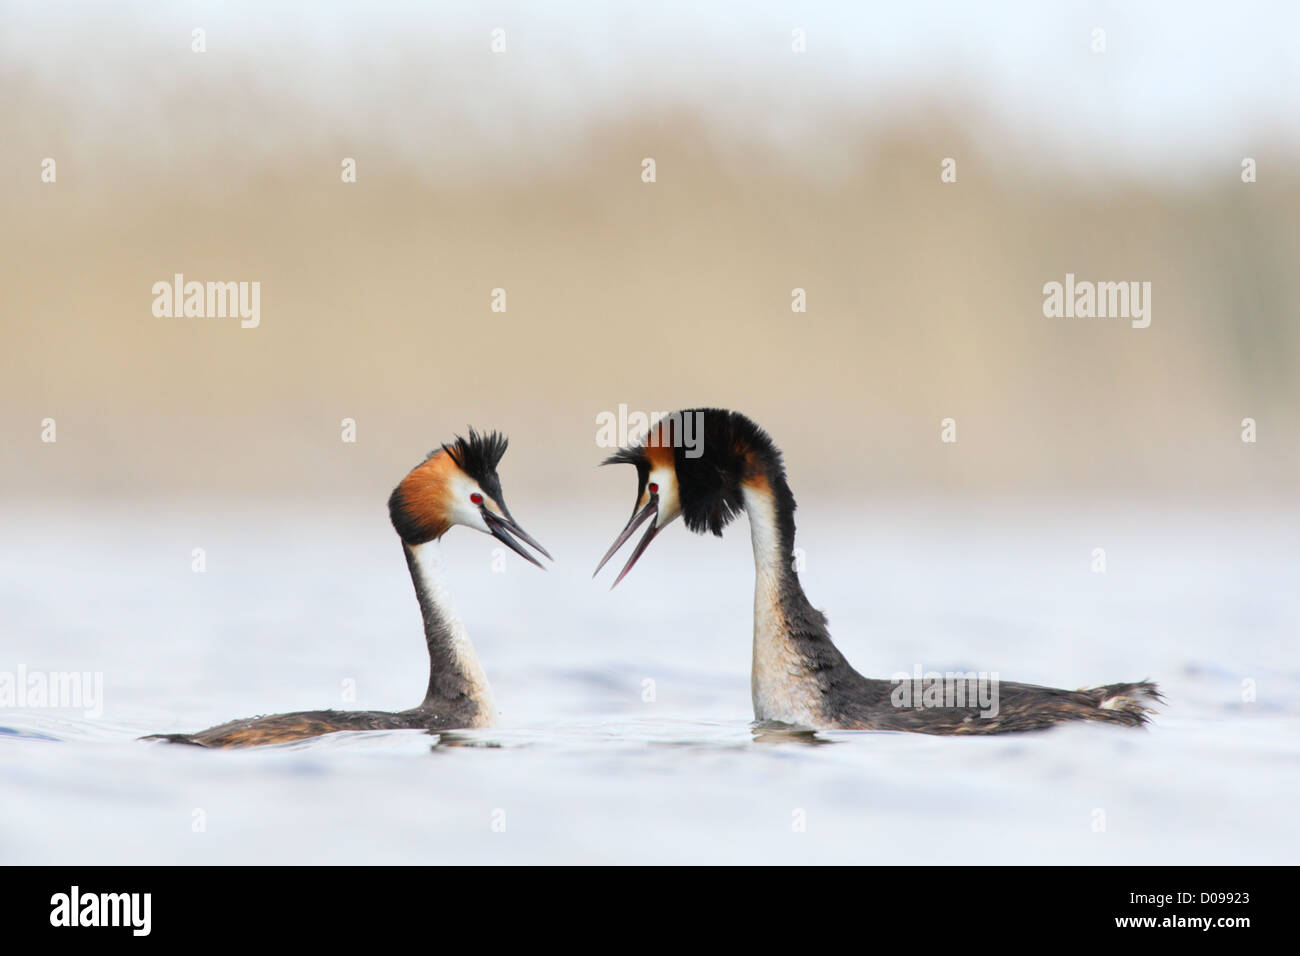 Great Crested Grebes (Podiceps cristatus) in courtship display. Europe - Stock Image